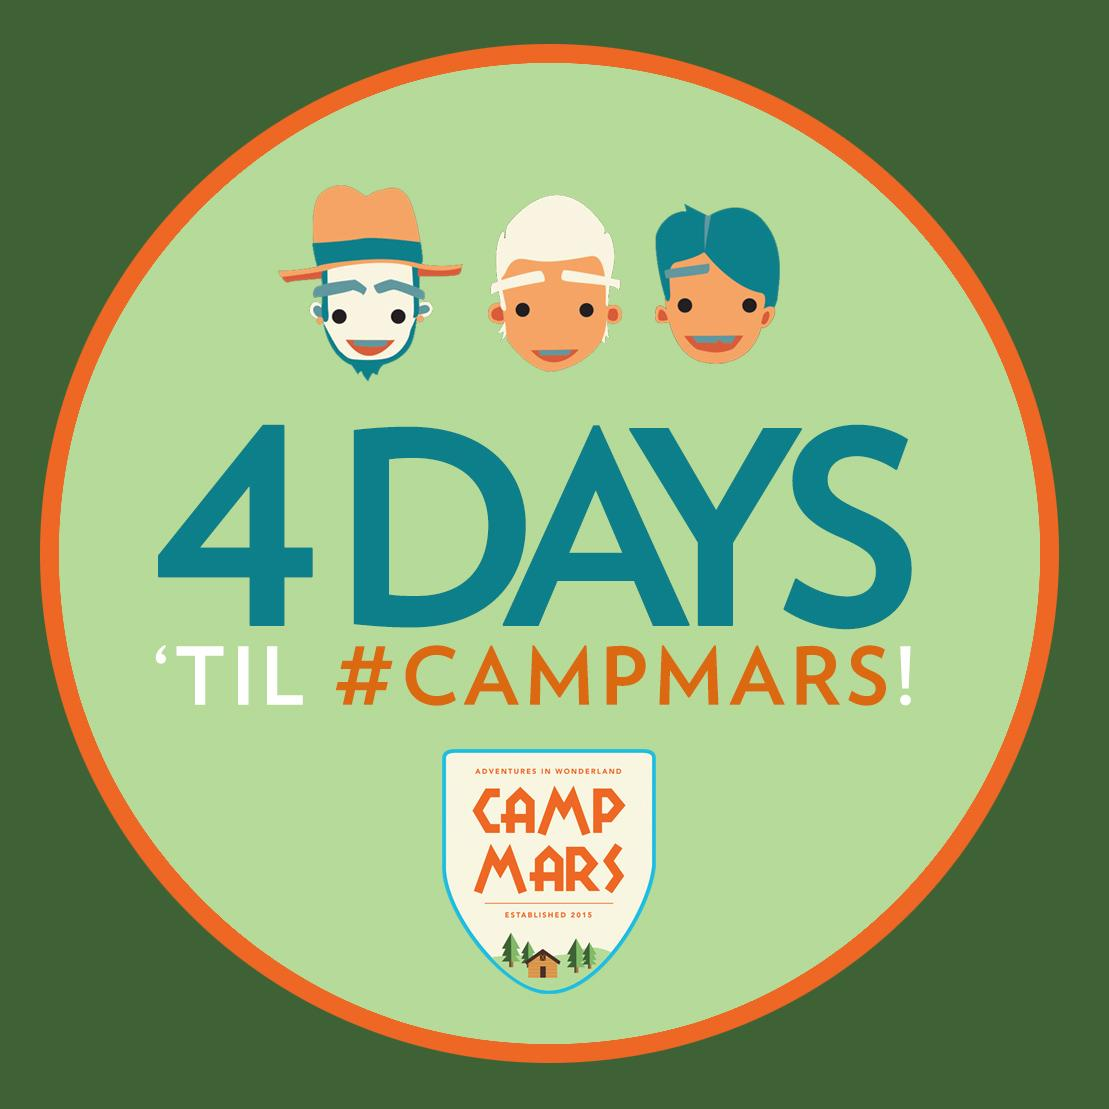 Not your average camp.  #CampMars #4DAYS!! http://t.co/uhdPT2dSE0 http://t.co/YW2bxCmE3w